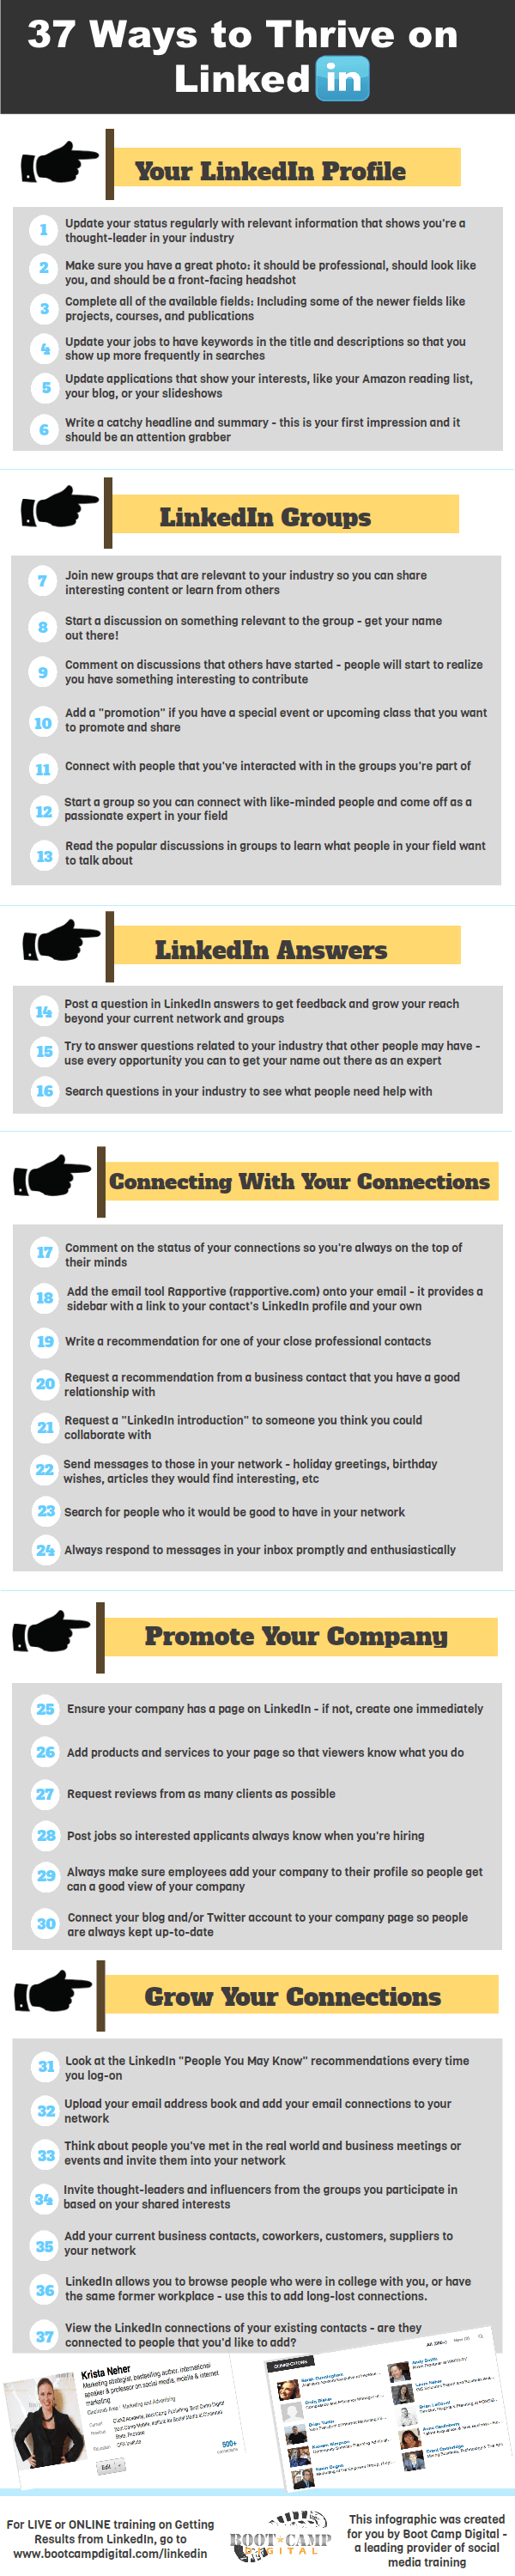 LinkedIn-Infographic-by-Boot-Camp-Digital